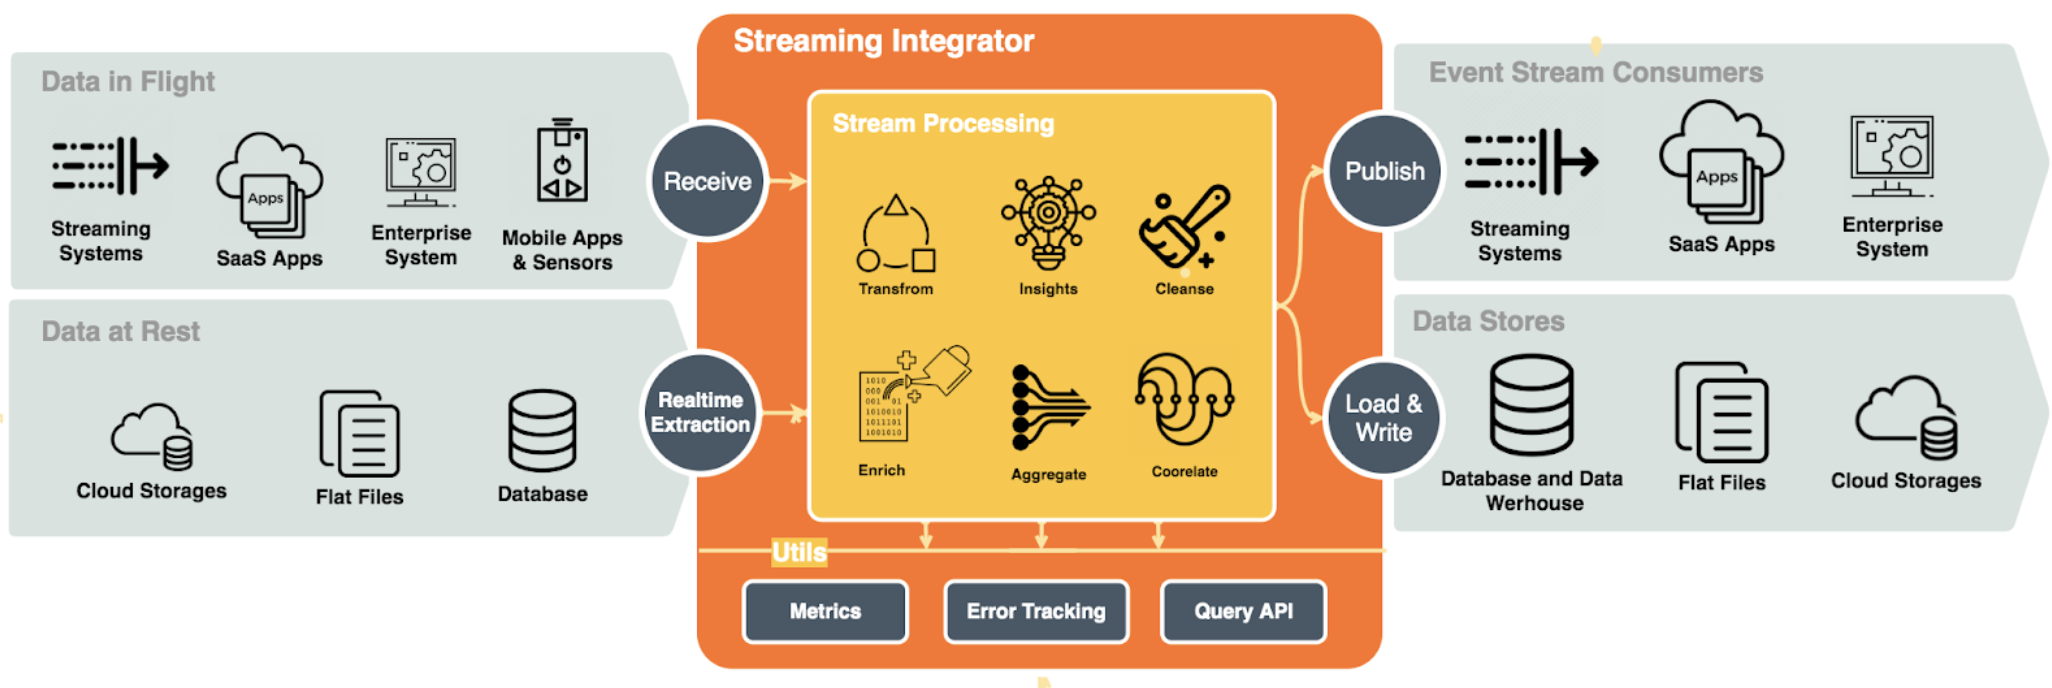 Streaming Integrator Use cases